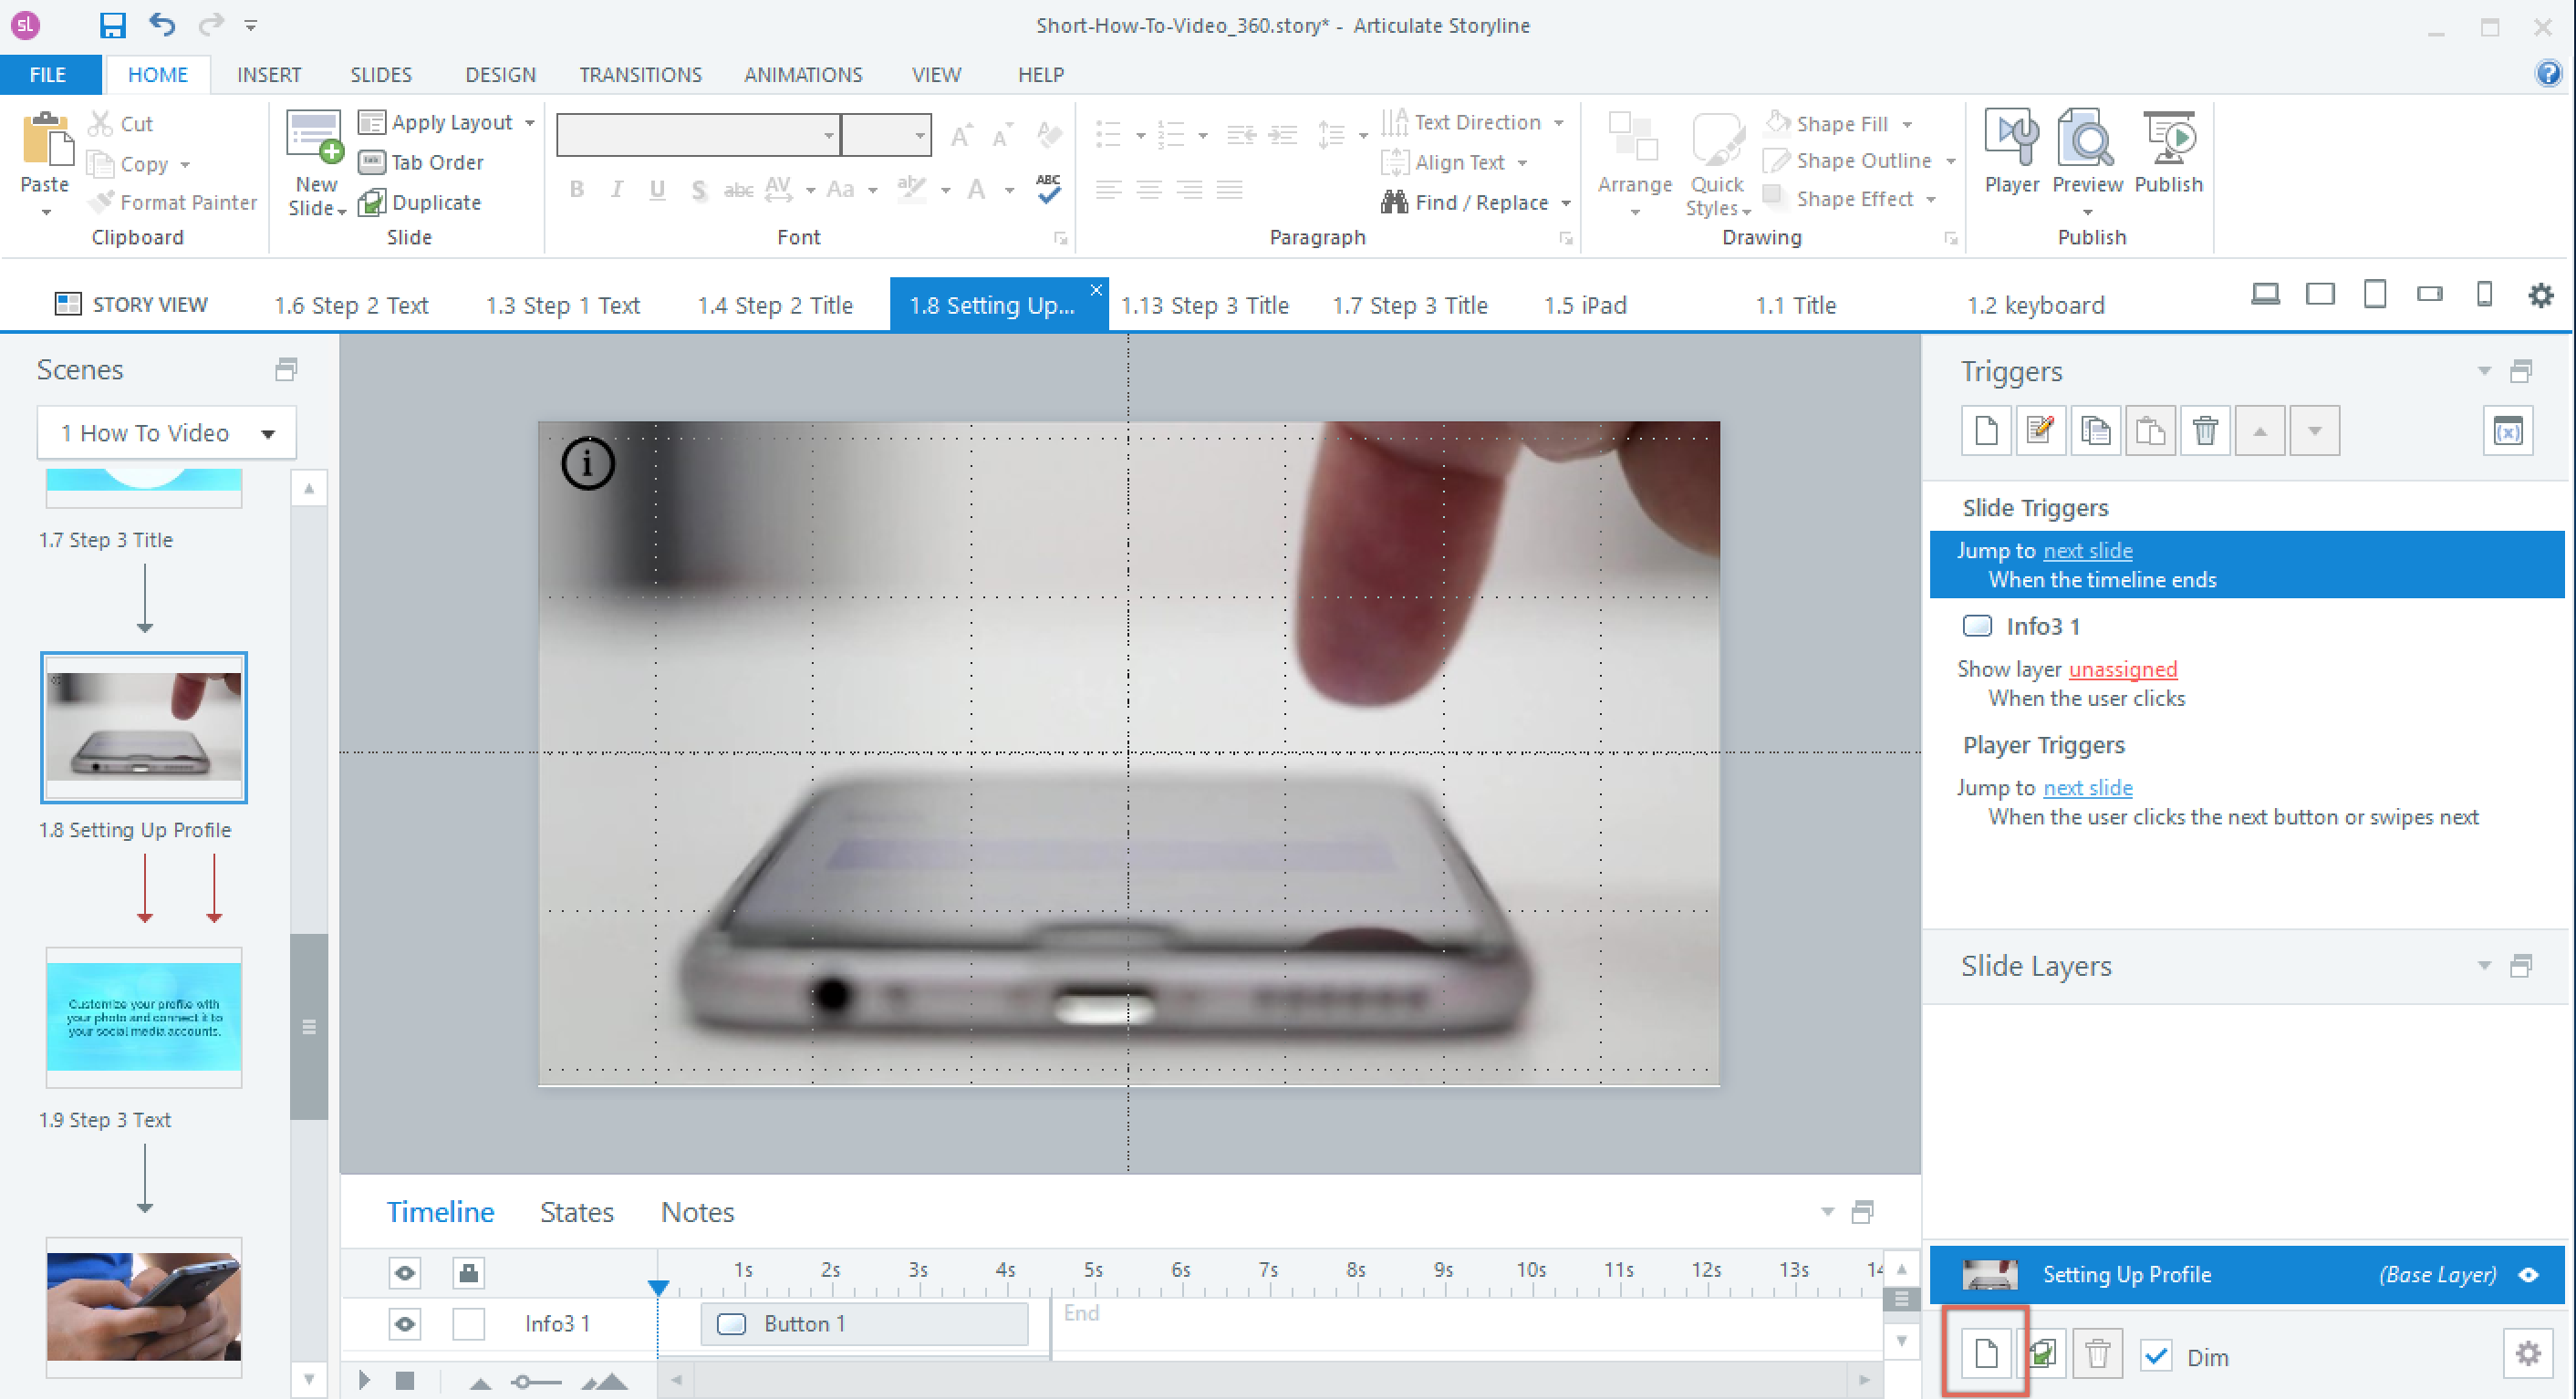 Add a Layer in Articulate Storyline 360